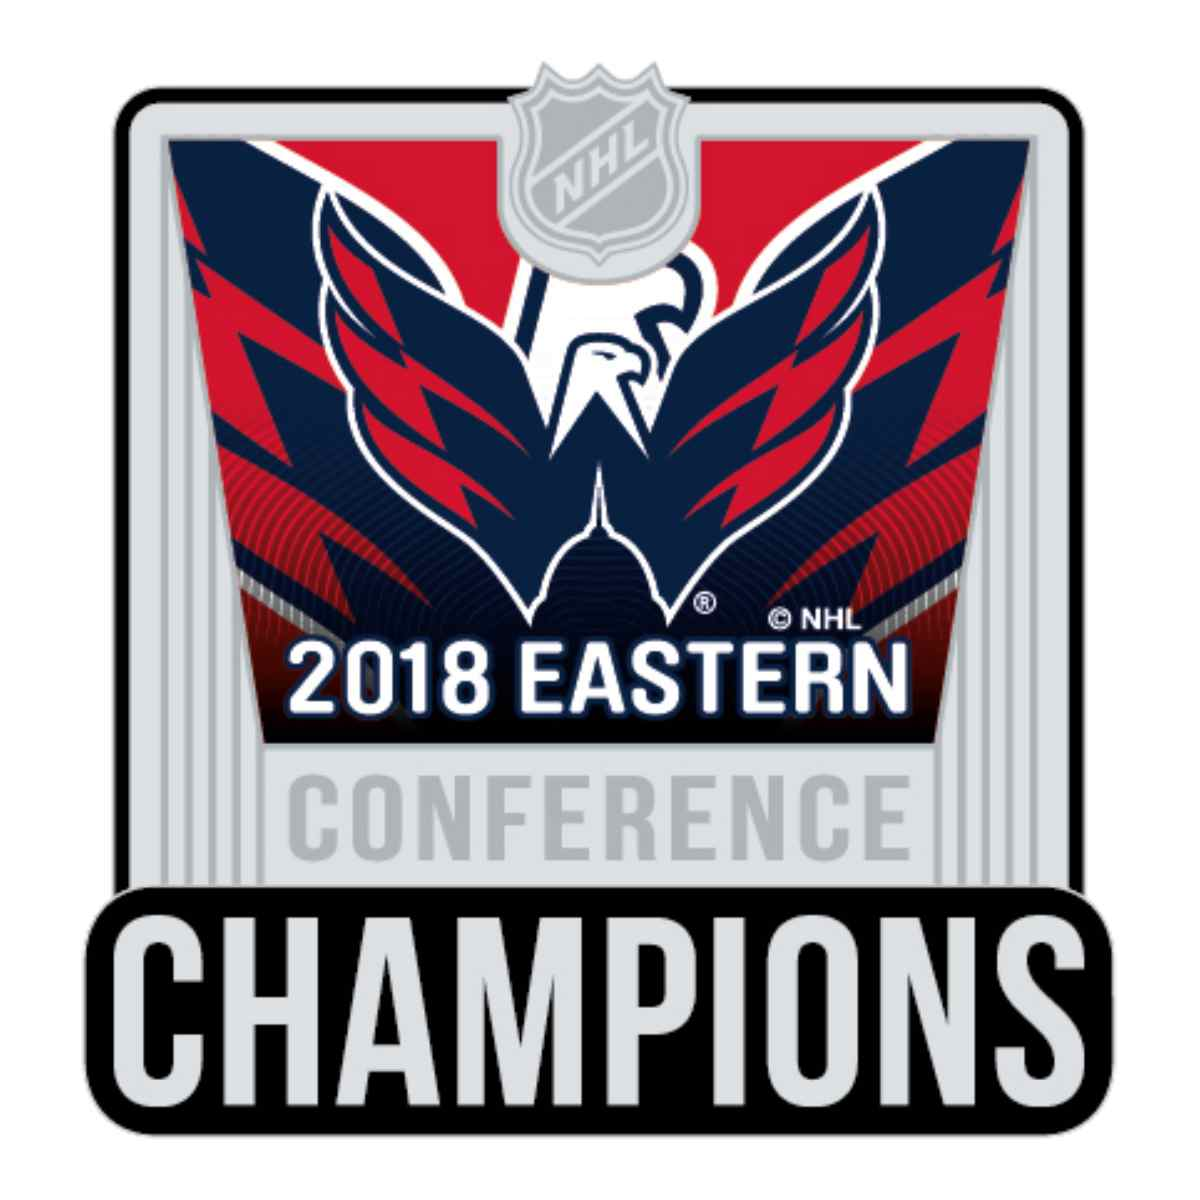 684d12cc92b Details about Washington Capitals 2018 Stanley Cup Final Eastern Conf  Champions Lapel Pin